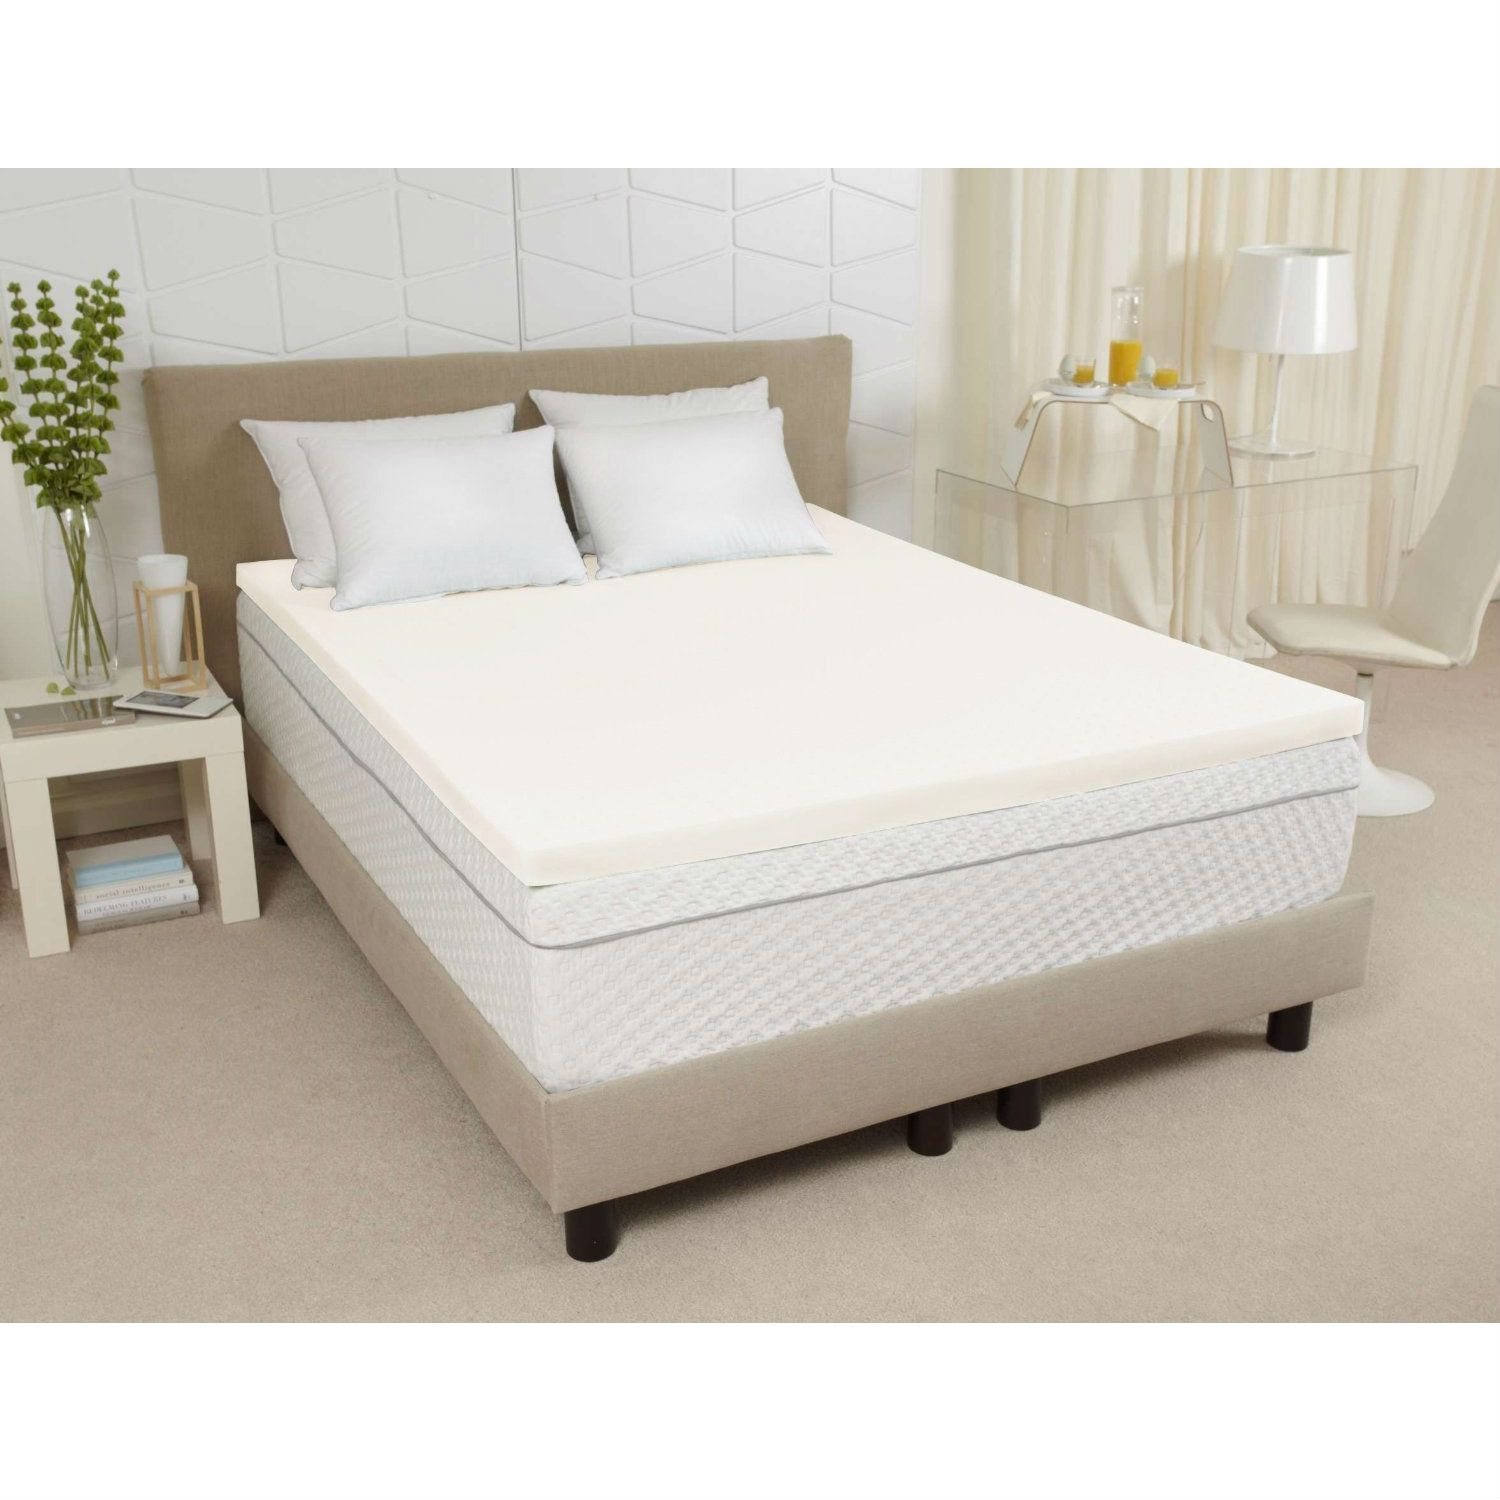 Twin Xl Size 3 Inch Thick Ventilated Memory Foam Mattress Topper